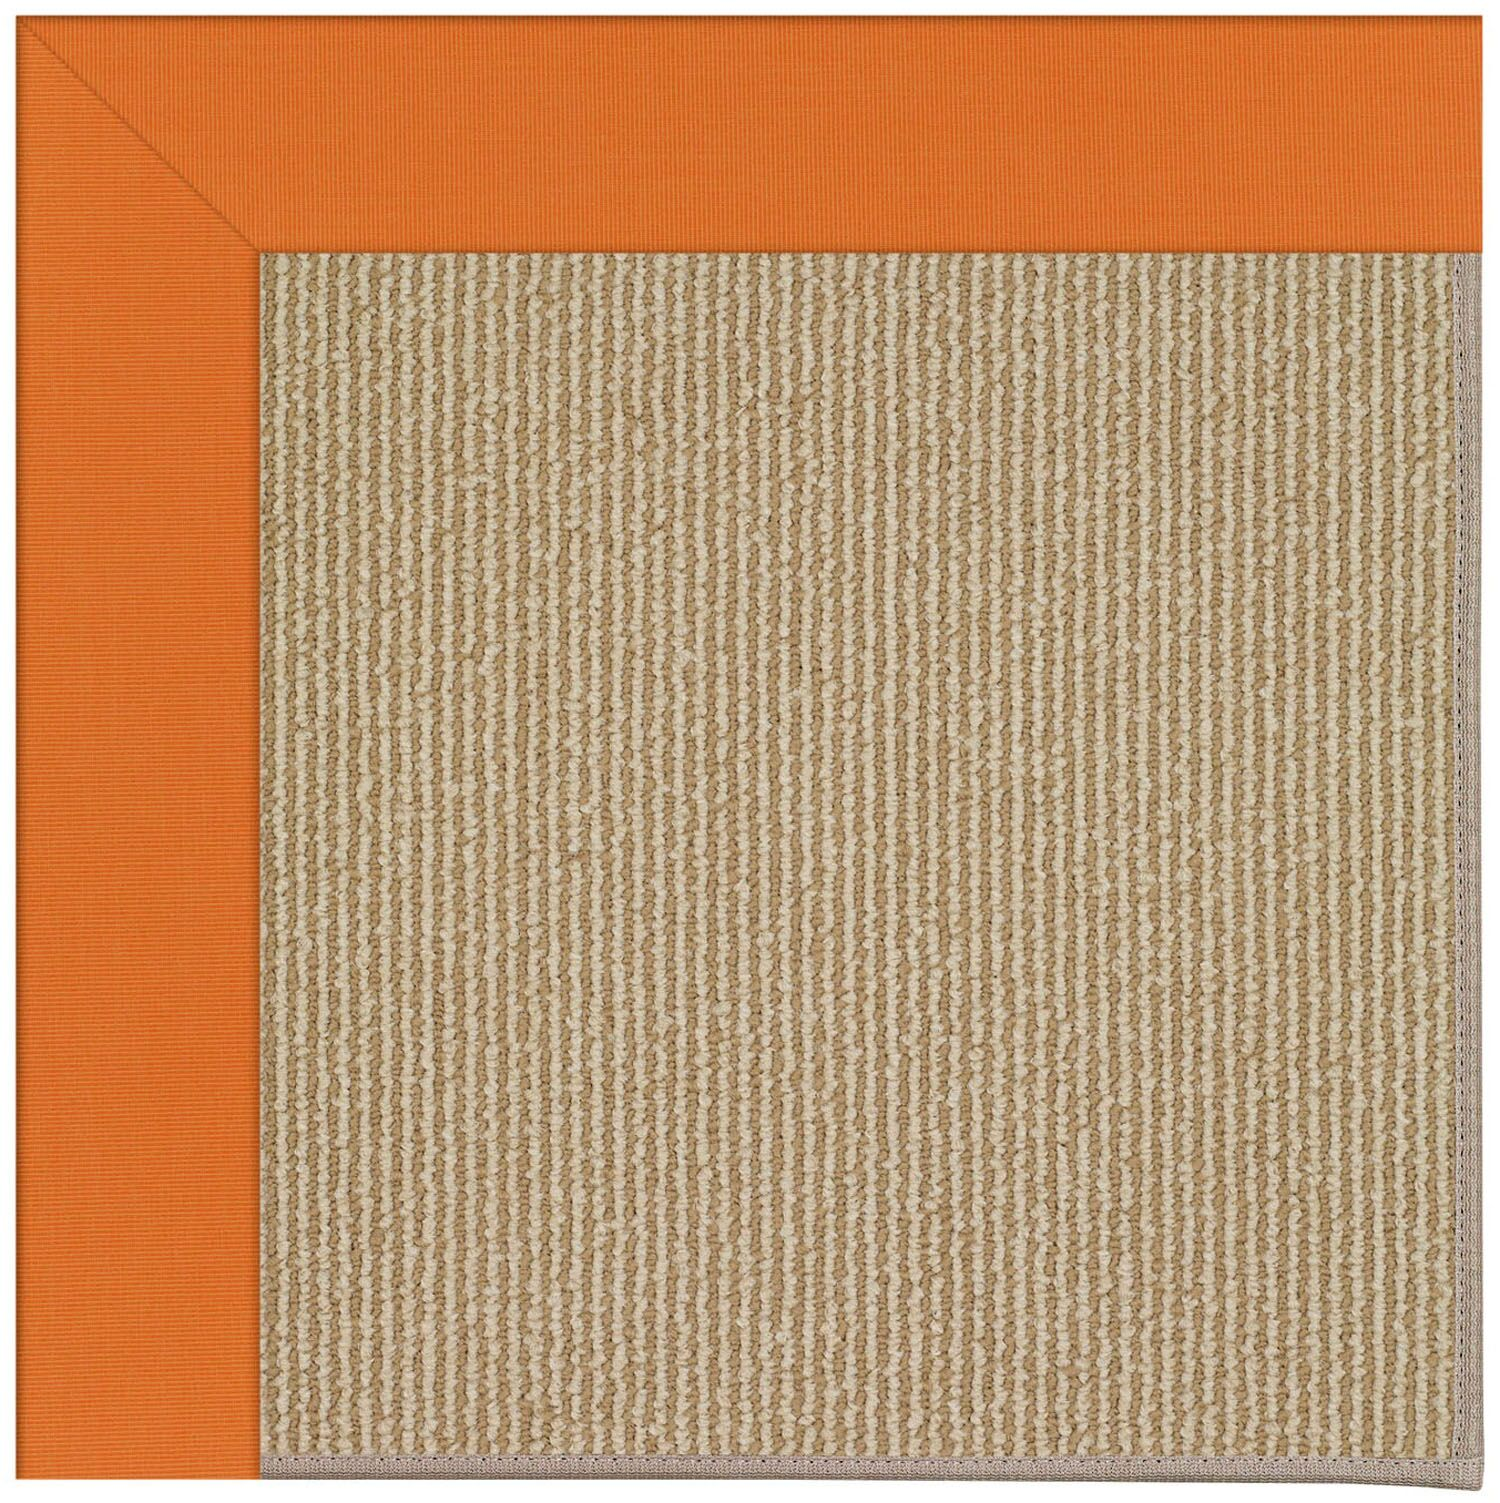 Lisle Machine Tufted Clementine/Brown Indoor/Outdoor Area Rug Rug Size: Square 10'